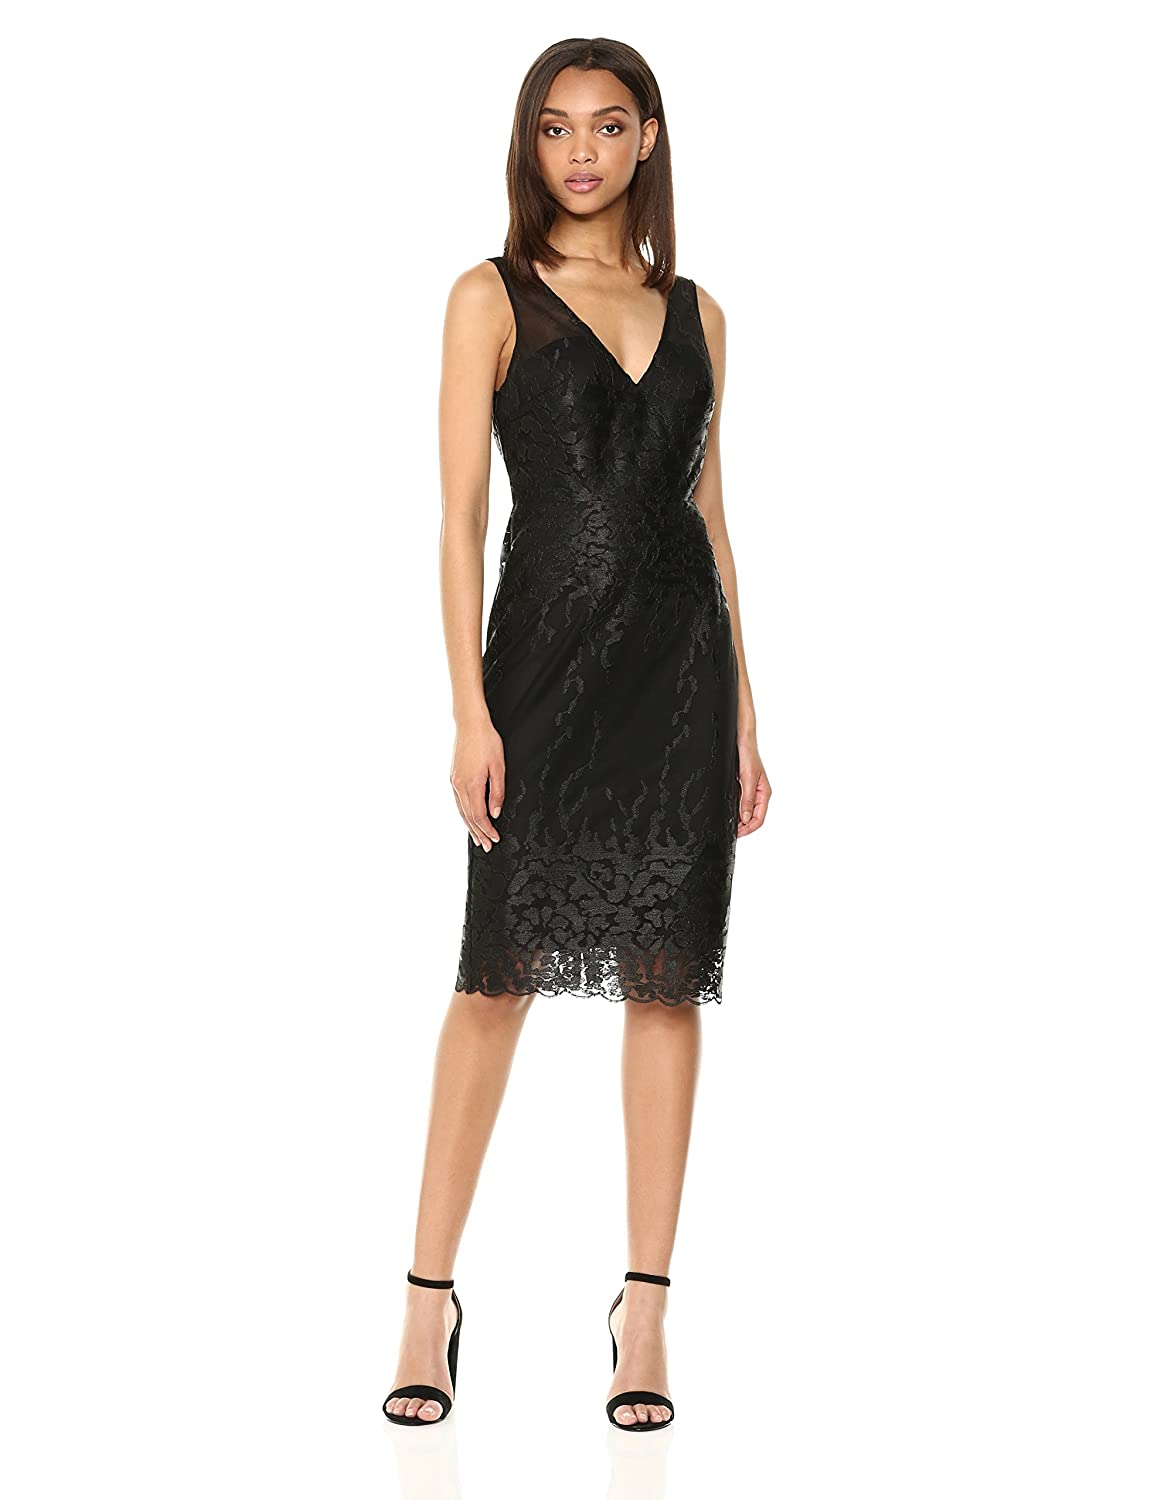 888cc85566b97 Nicole Miller New York Women's Sleeveless V-Neck Fitted Cocktail Dress at  Amazon Women's Clothing store: